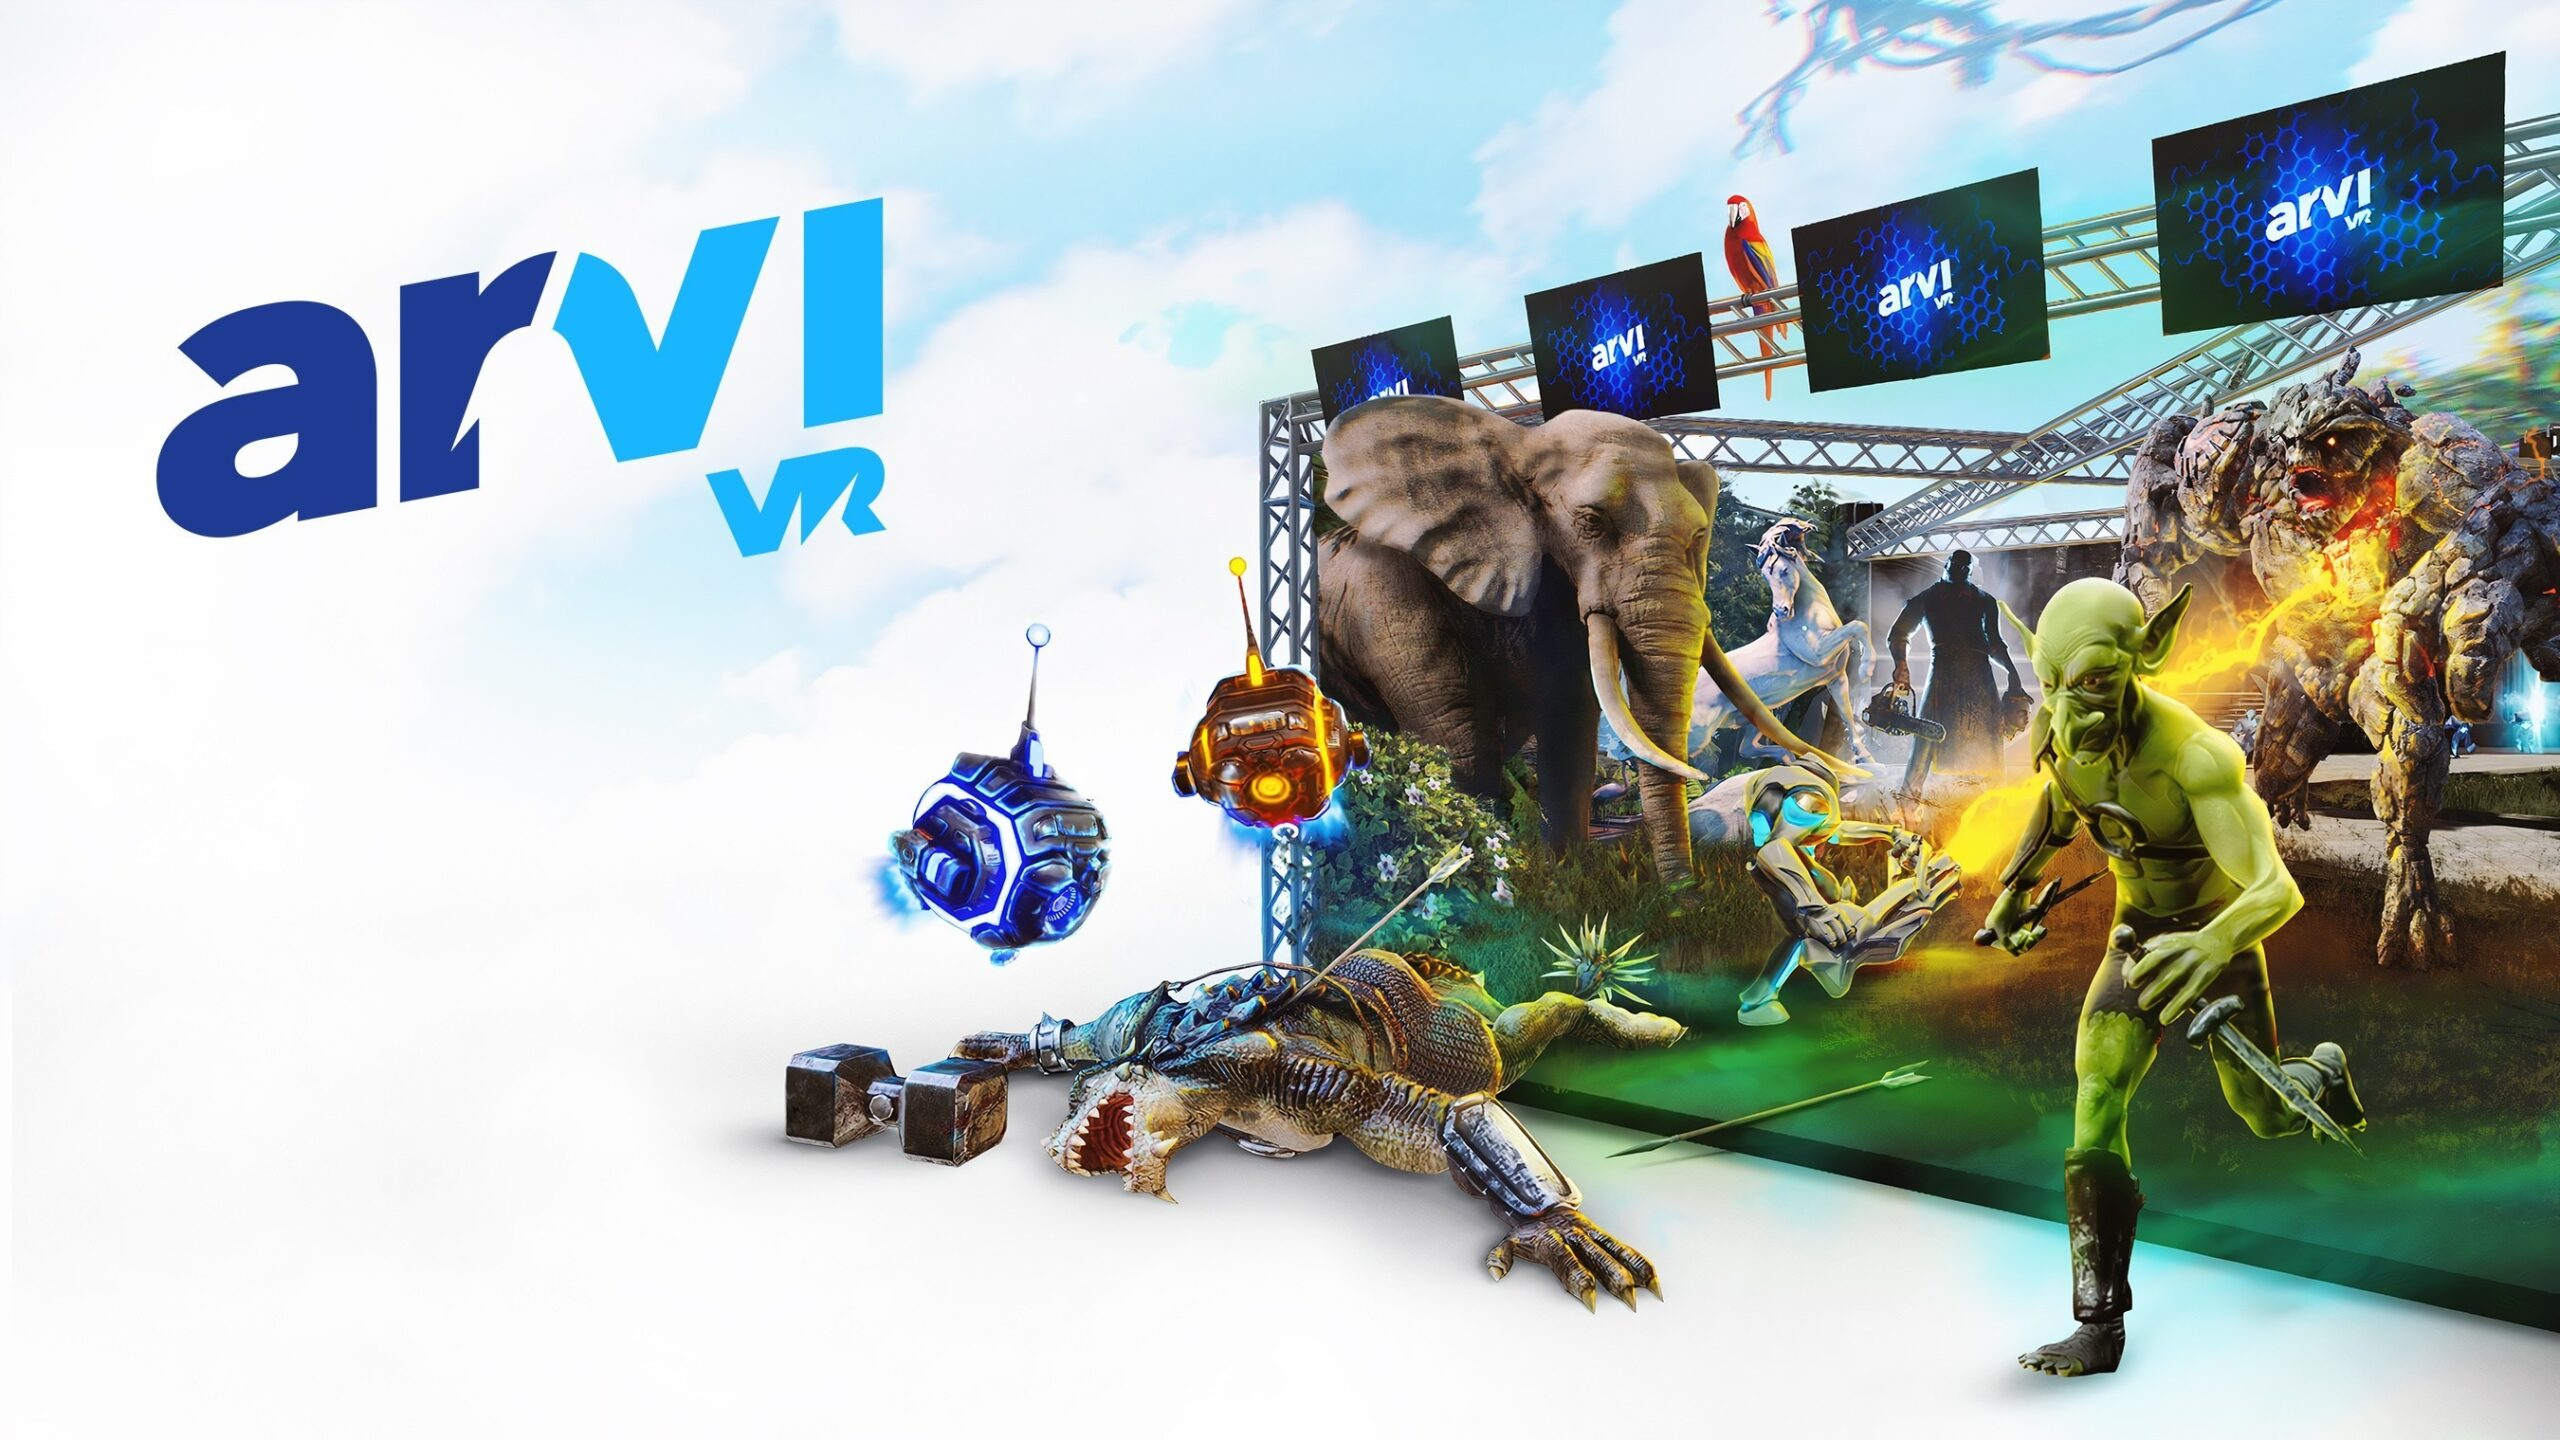 HTC Vive Partners with ARVI VR to Expand its Global Location-Based Virtual Reality Arcade Offering